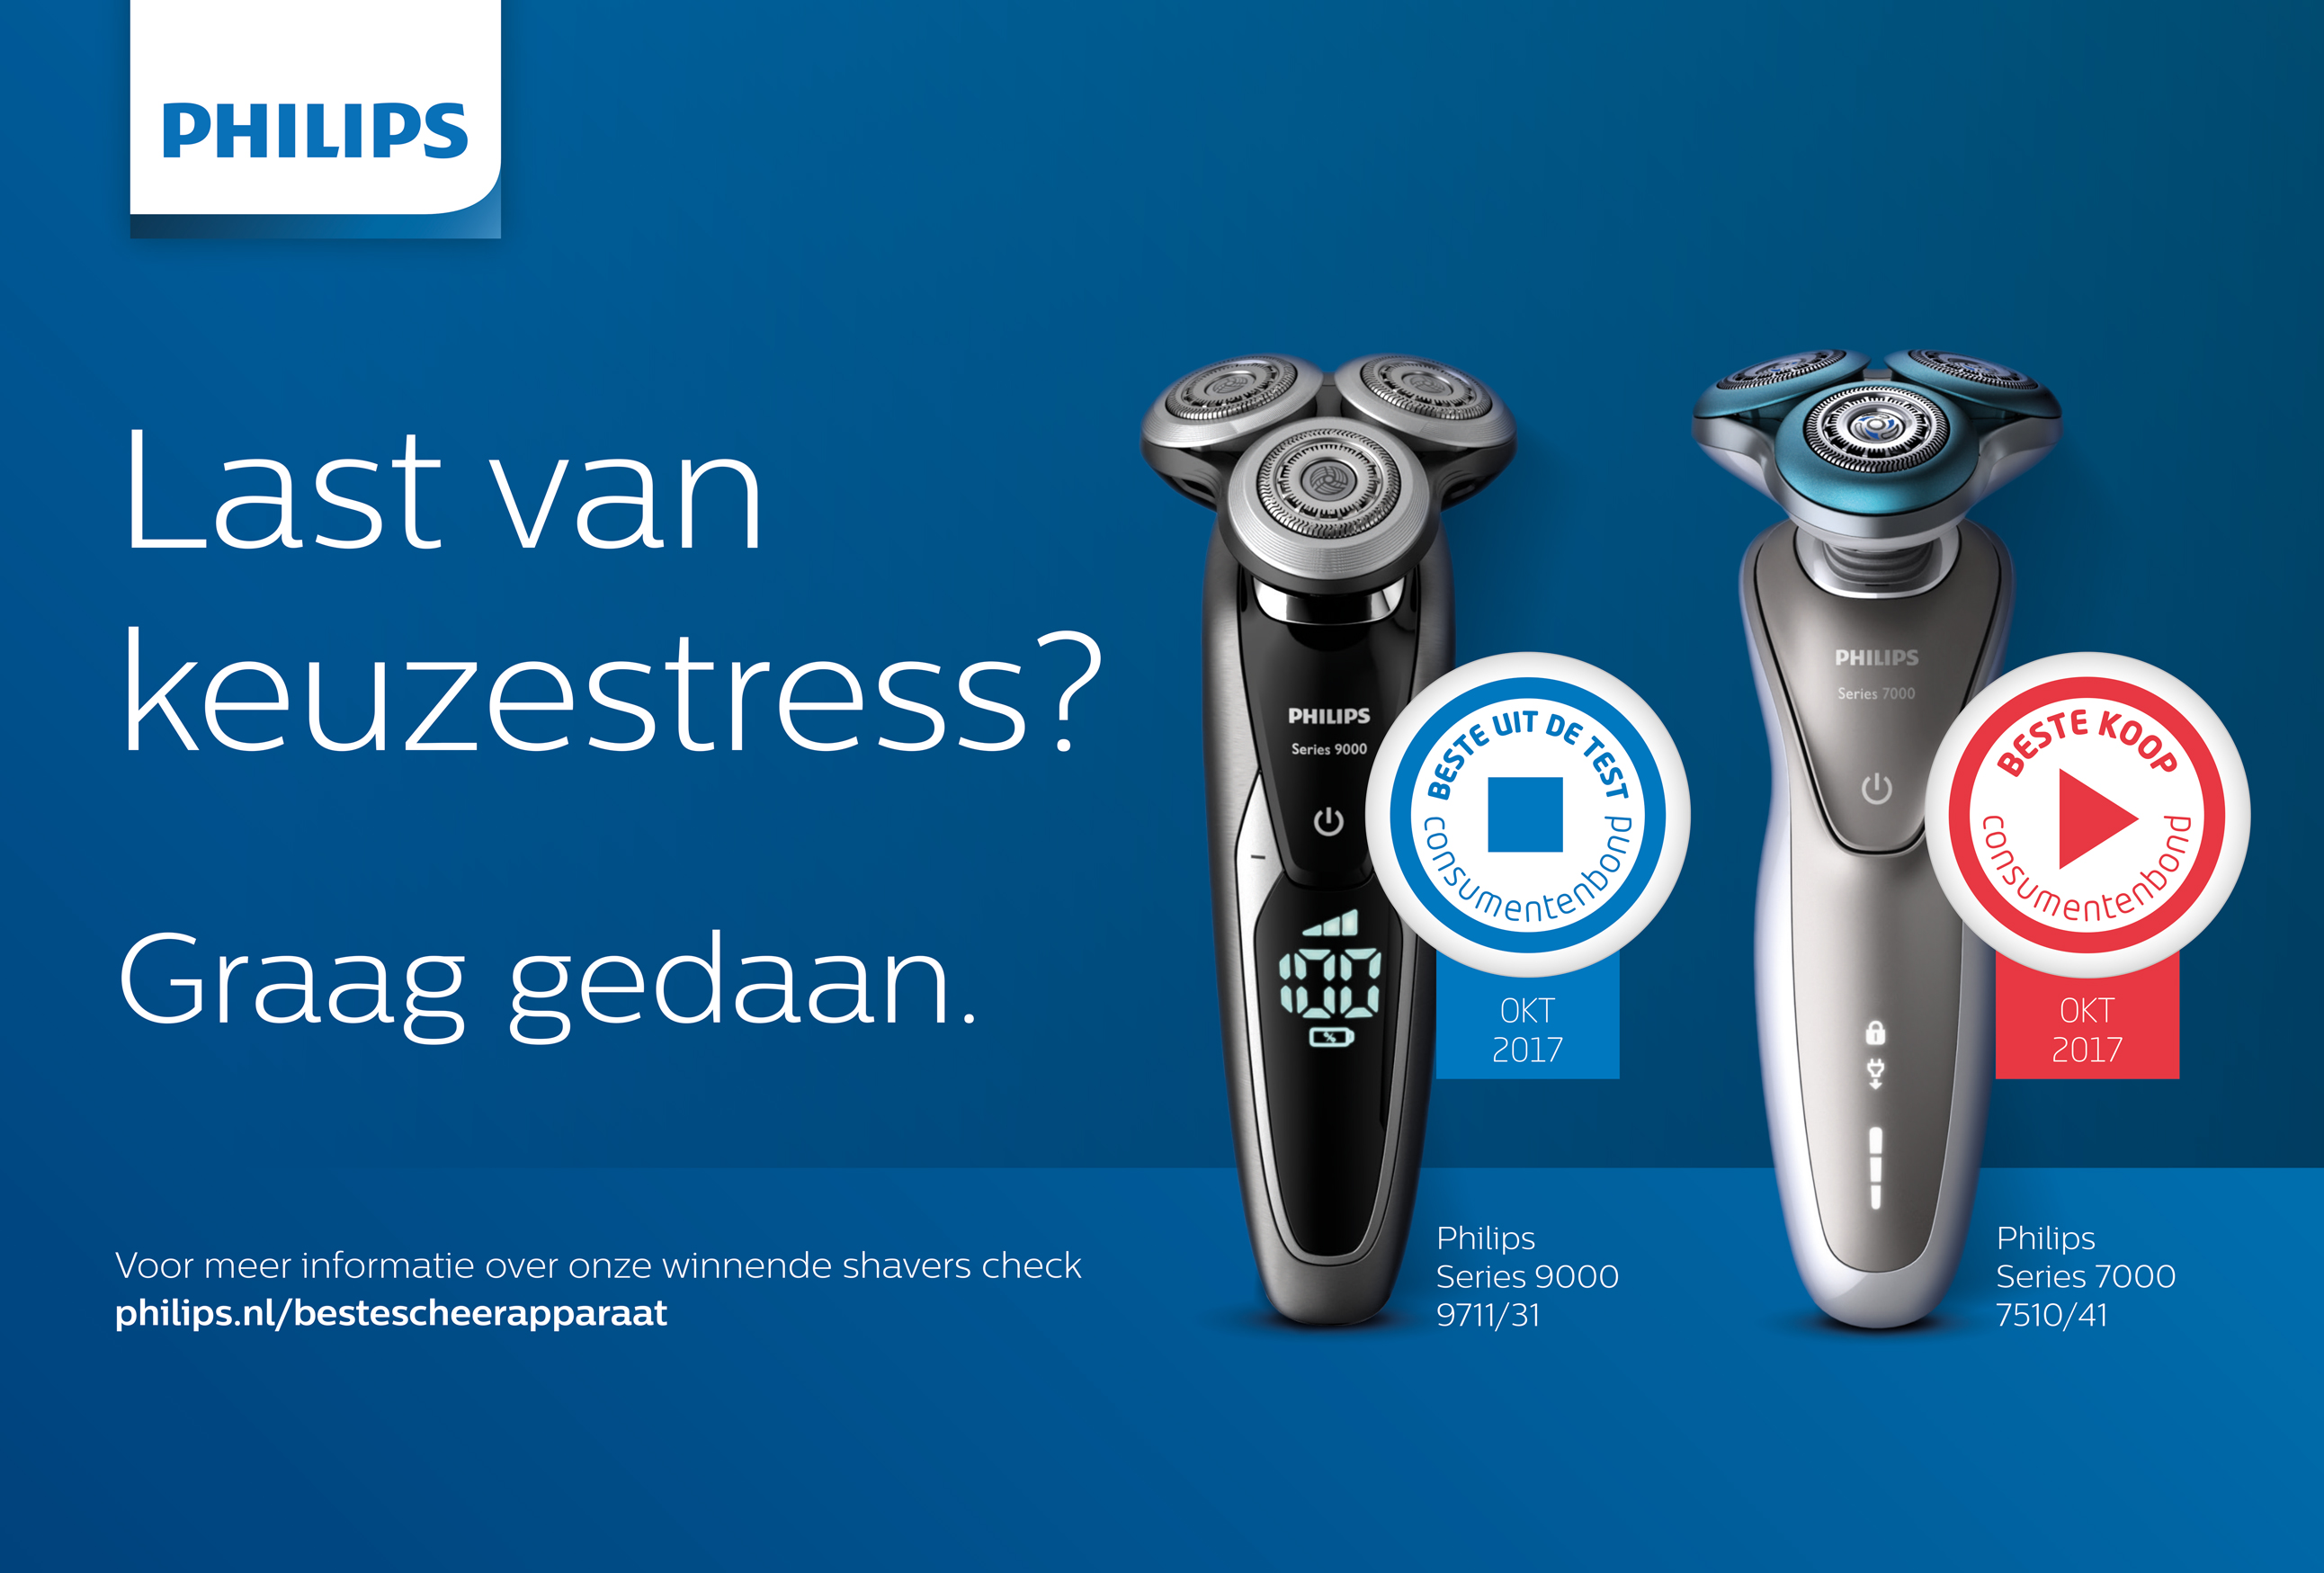 philips-shavers-landscape